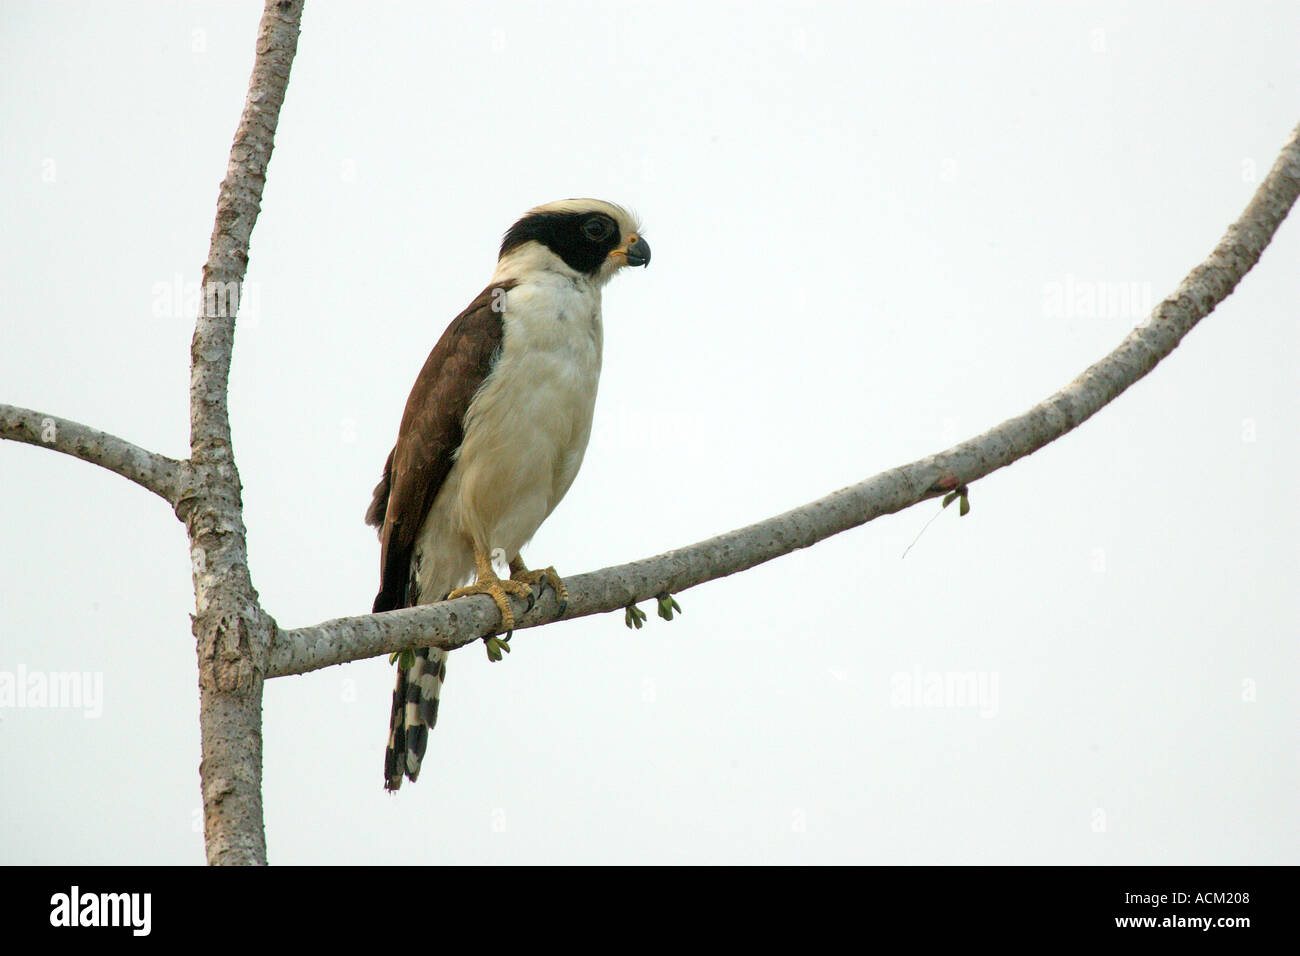 LAUGHING FALCON Herpetotheres cachinnans Stock Photo